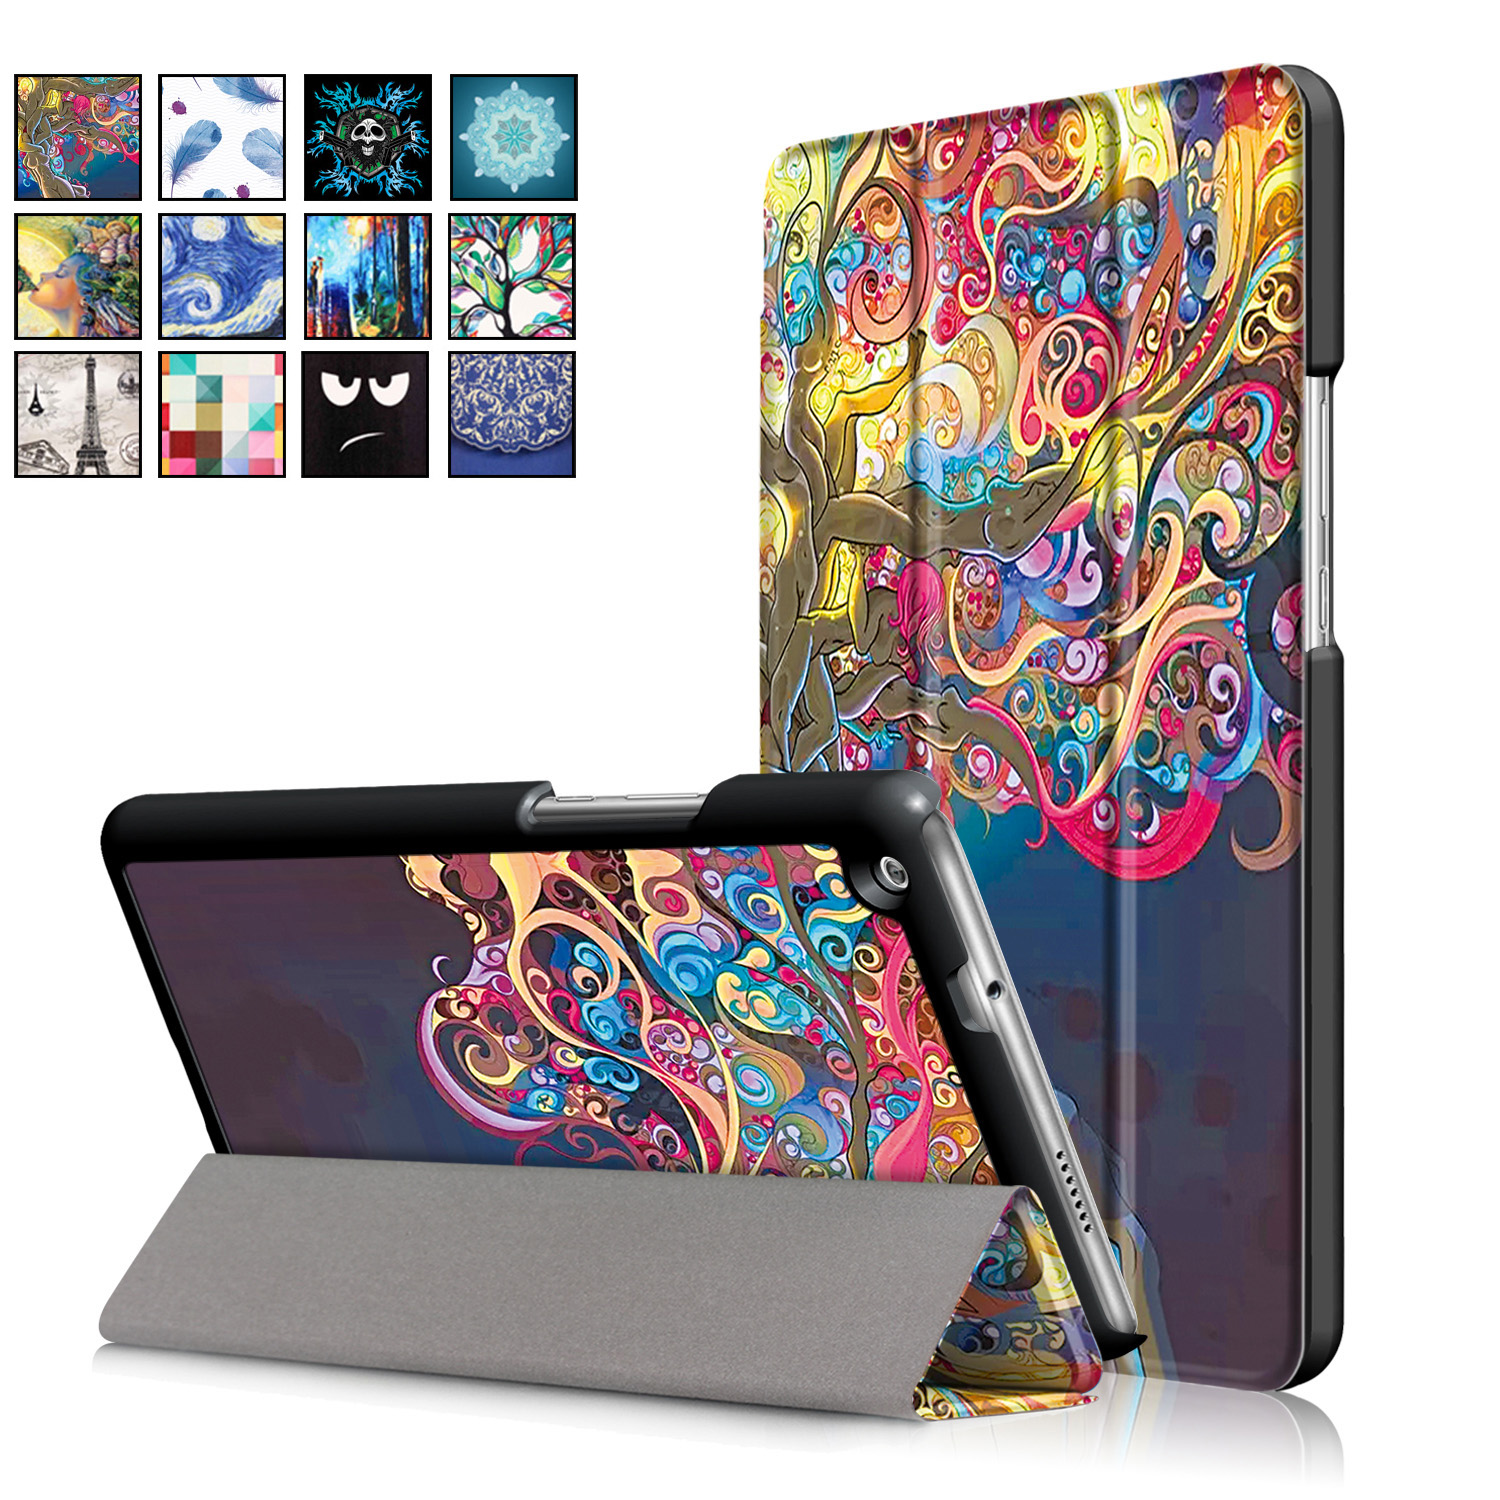 for 2017 Huawei [M3 Lite 8.0] Case, Ultra Slim Case + PU Leather Smart Cover Stand Auto Sleep/Wake for 8.4 Mediapad M3 Lite 8.0 megoo case cover sleeve for huawei mediapad m3 8 4 ultra slim lightweight folio stand 8 4inch